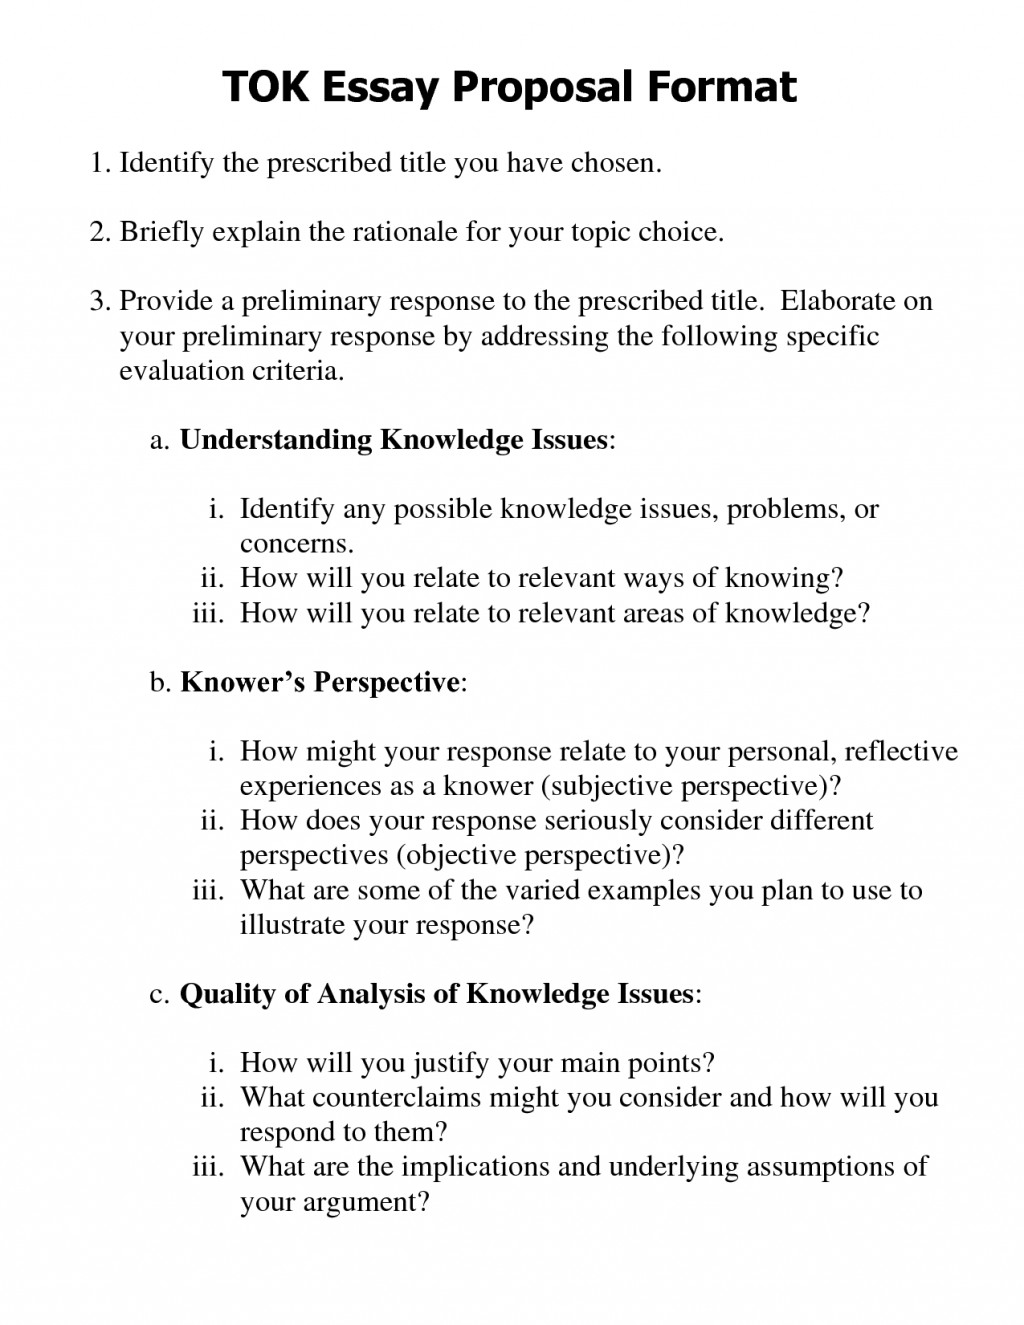 002 Olxkktmp0l What Is Proposal Essay Top A Argument The Purpose Of Large